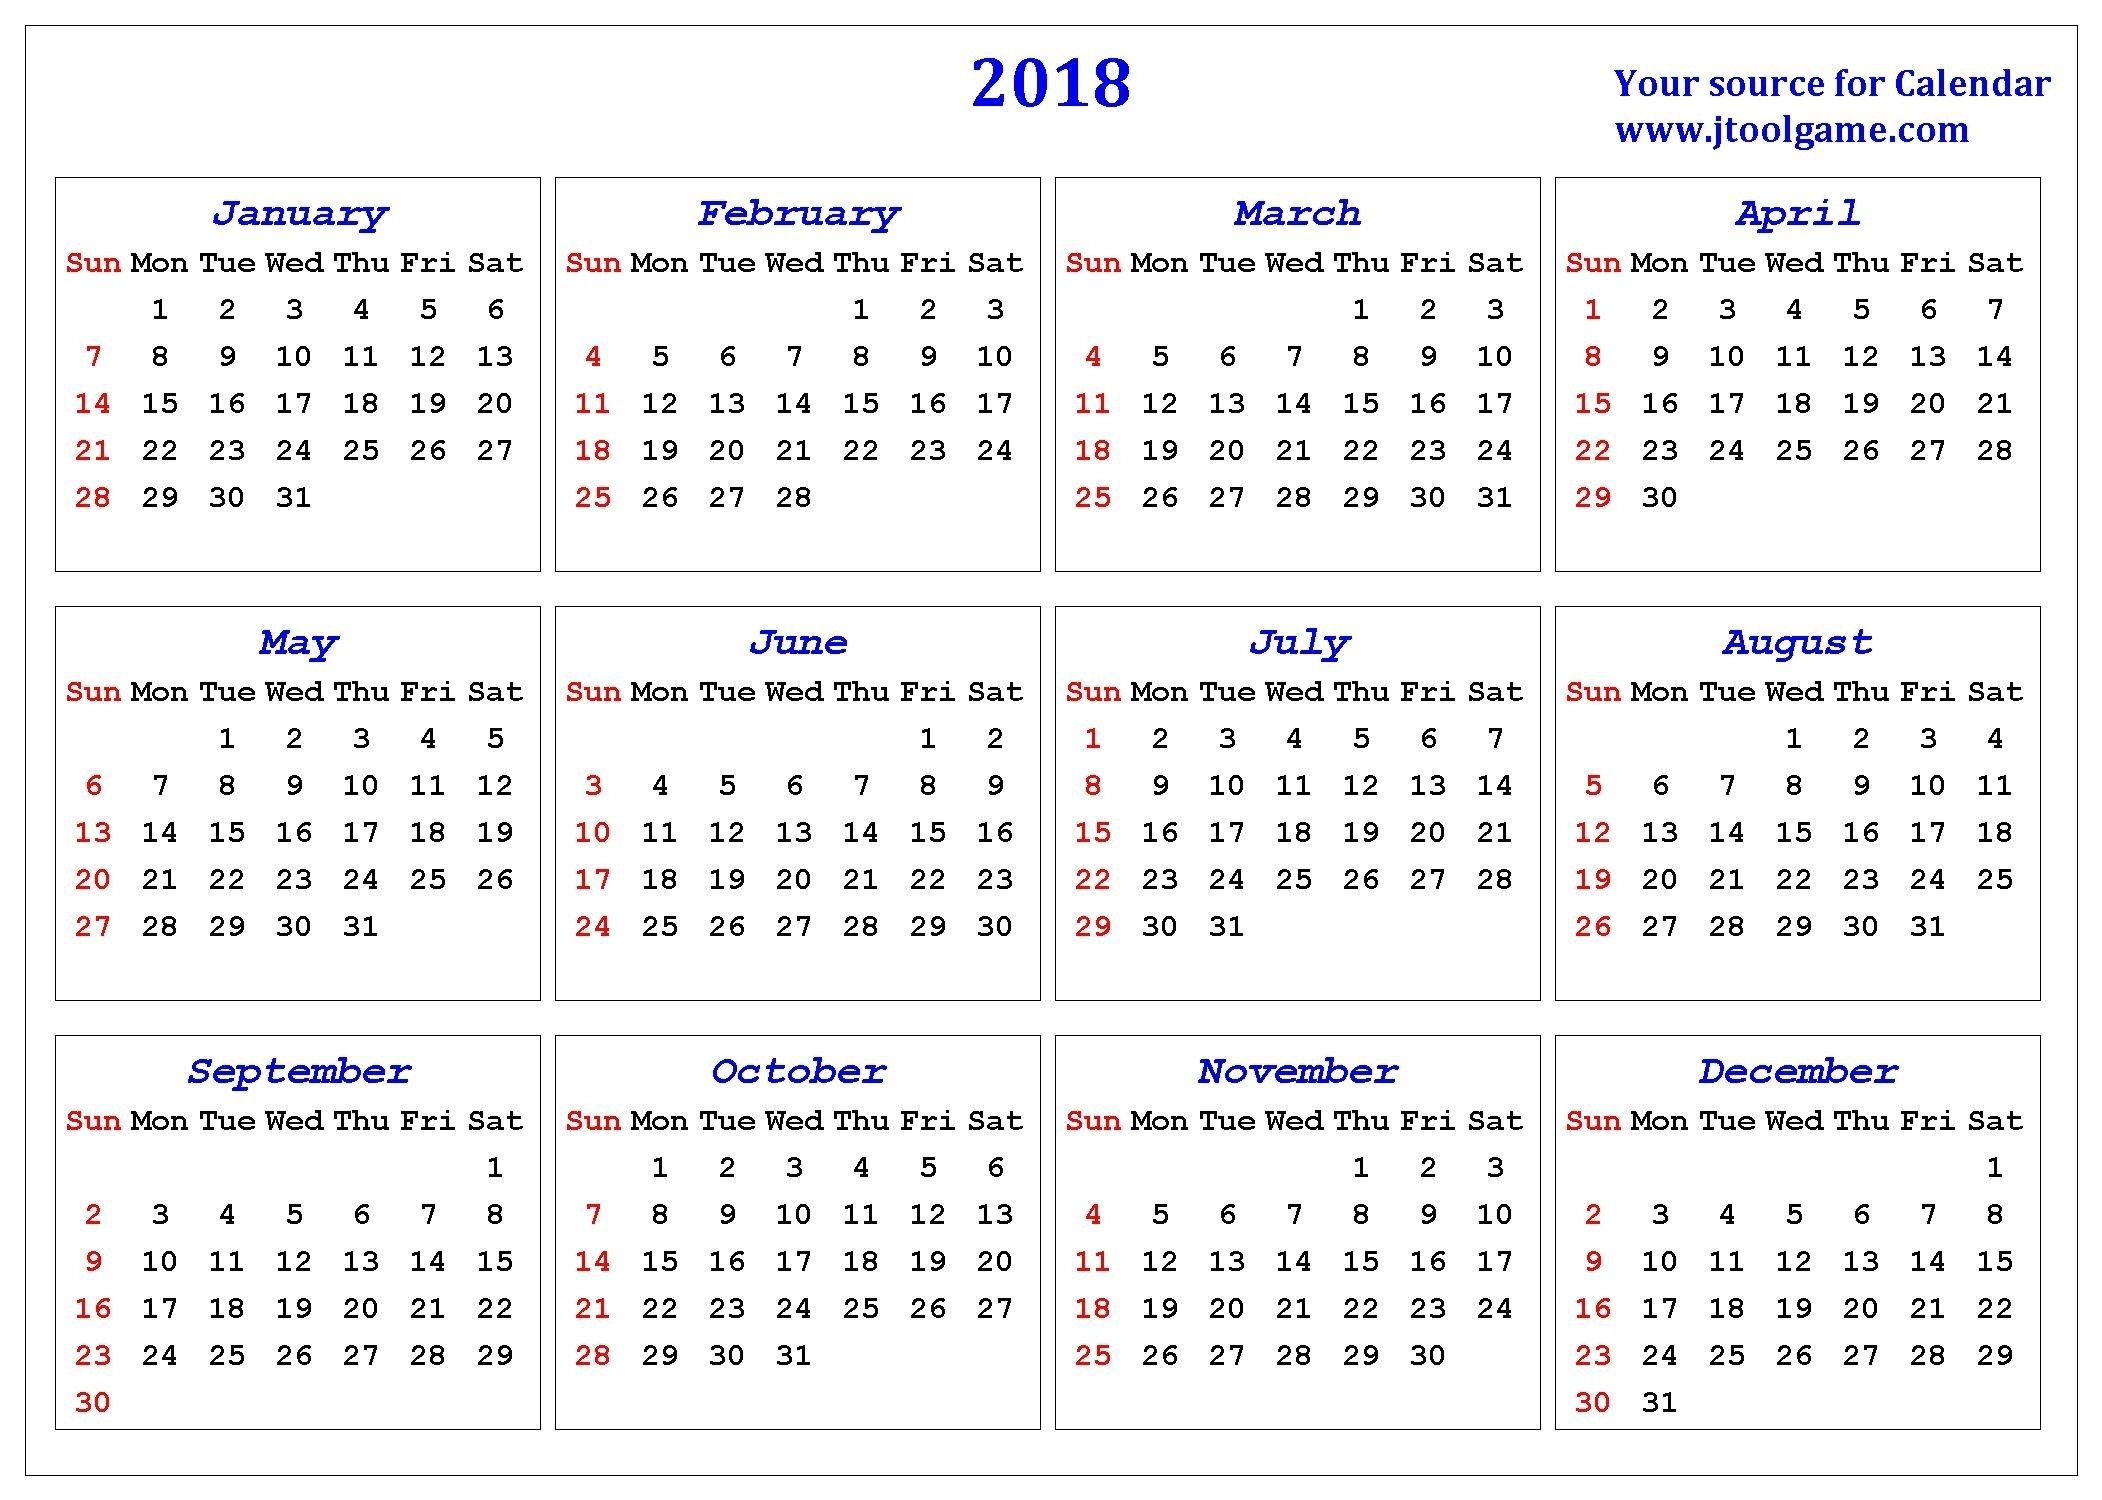 2018 Calendar Numbered Weeks | Jazz Gear for Number Of Weeks In A Year Calendar